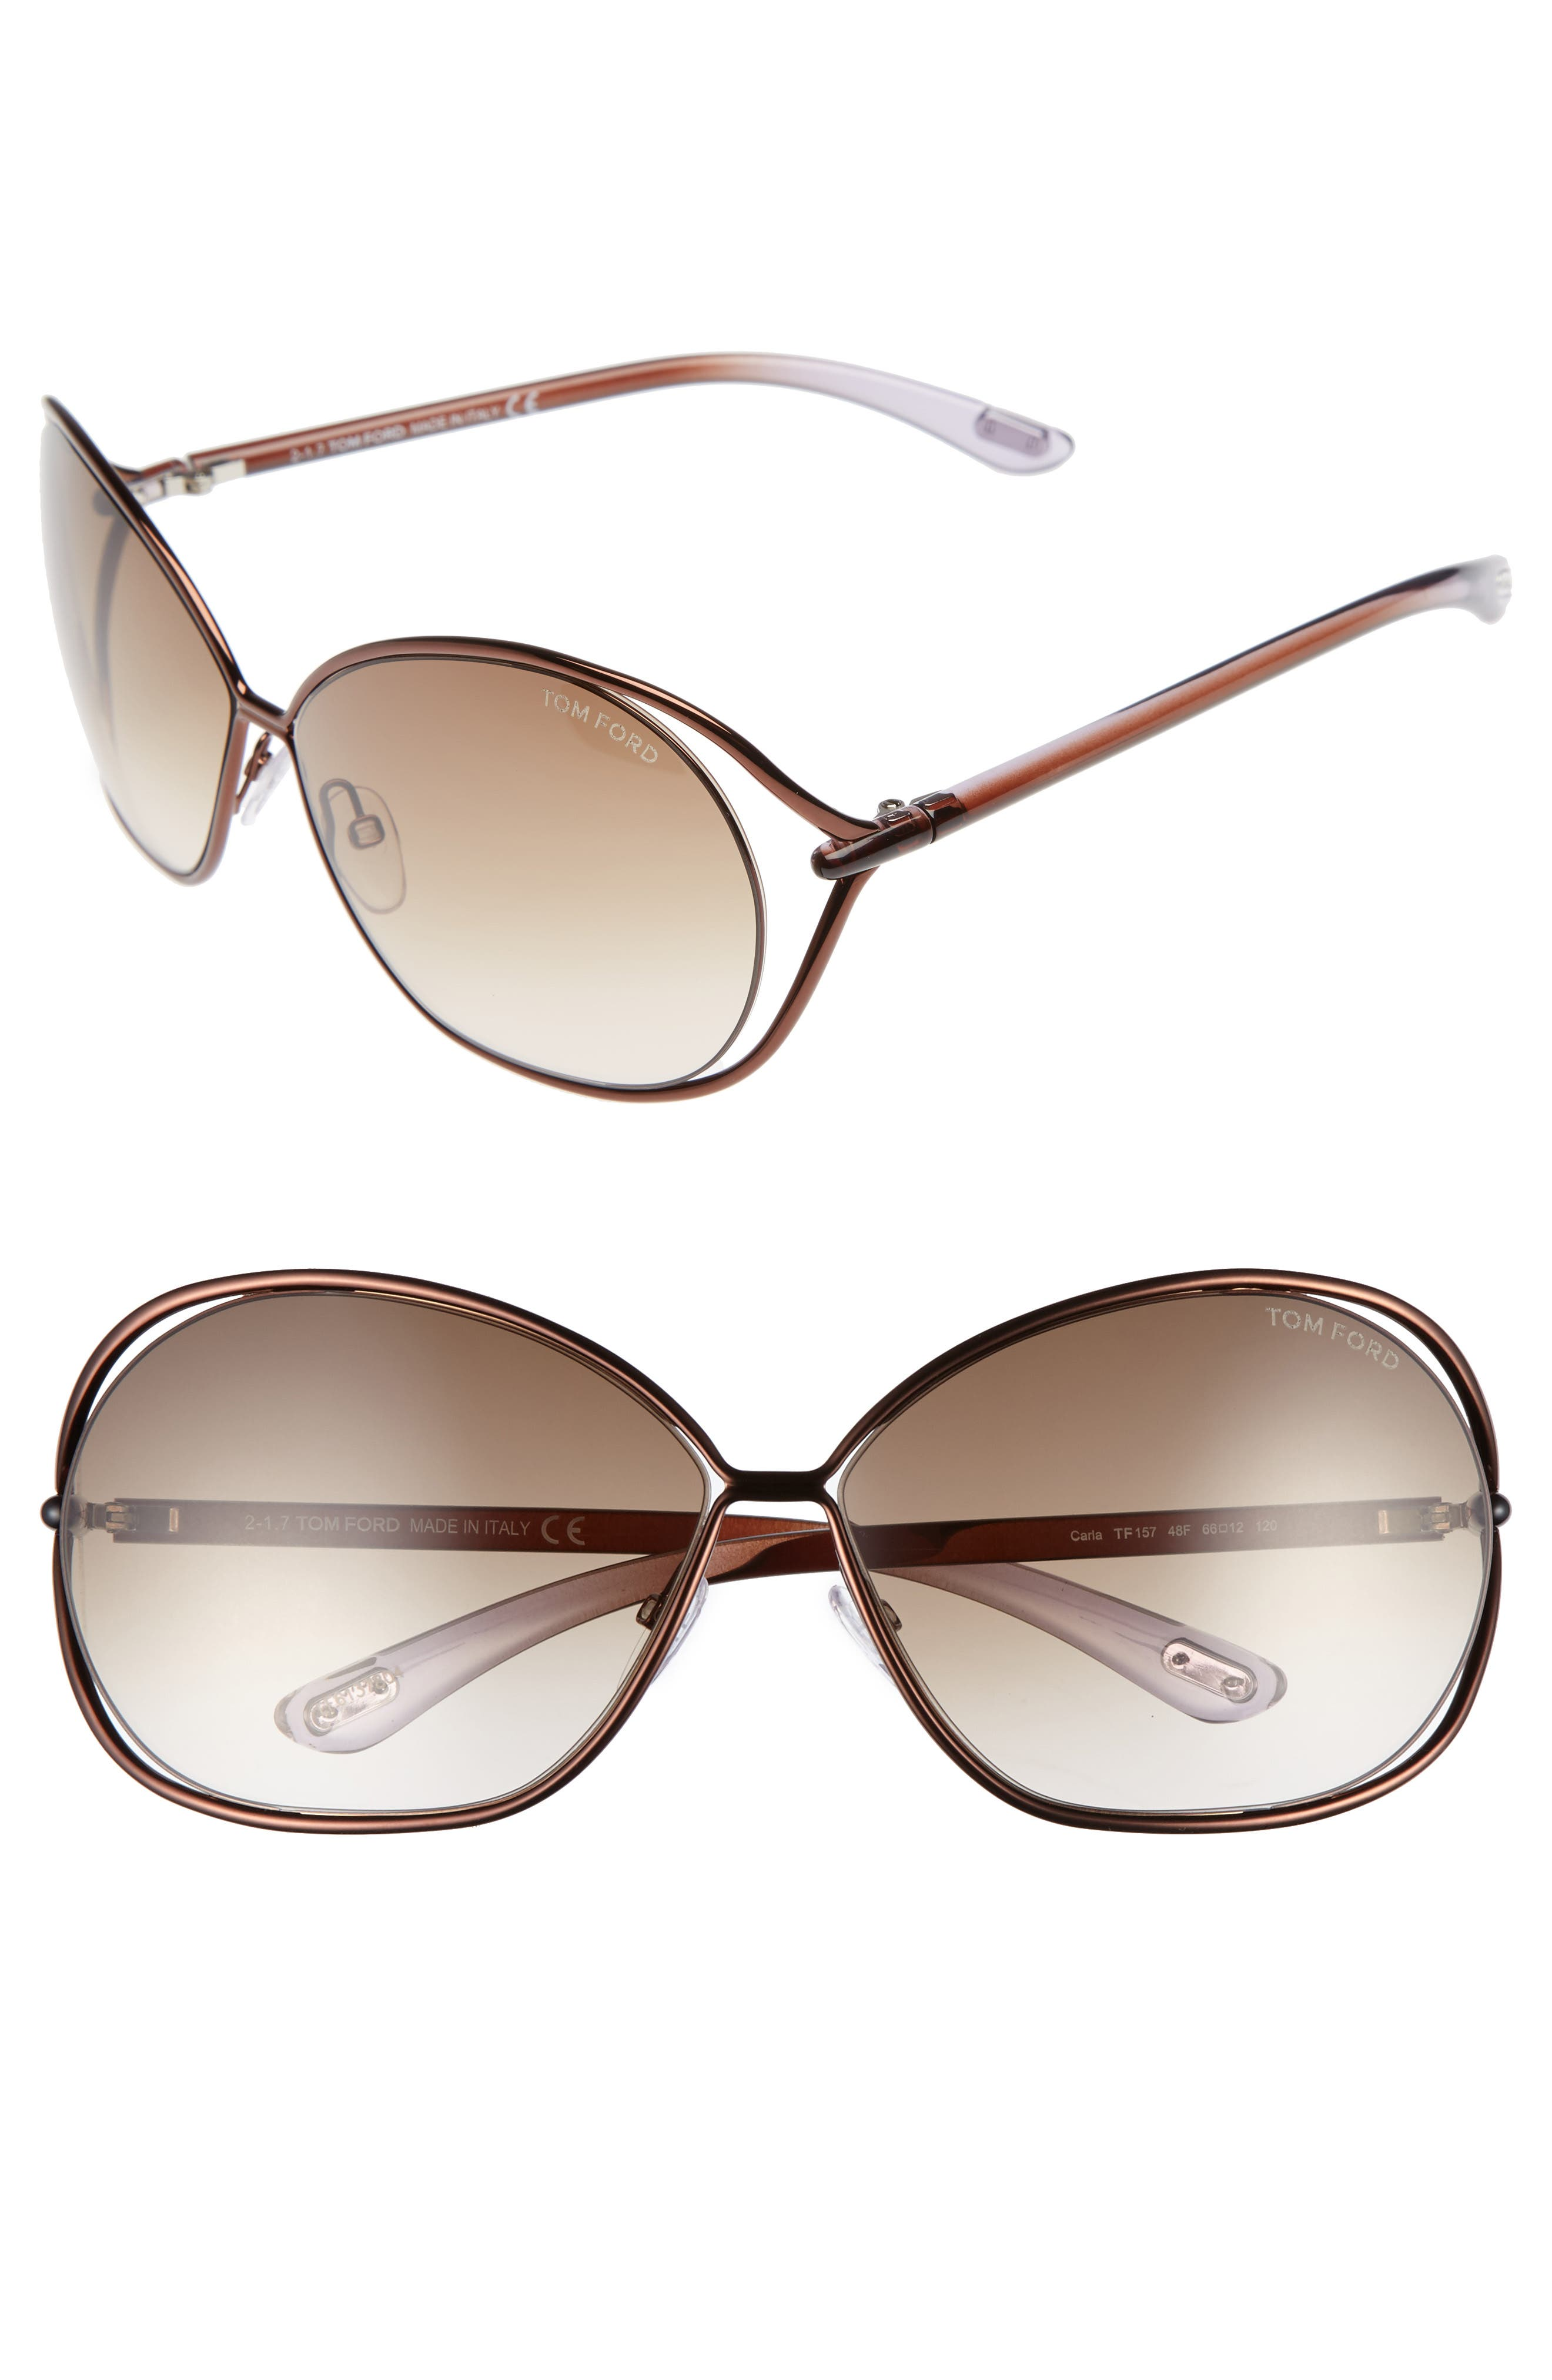 Alternate Image 1 Selected - Tom Ford 'Carla' 66mm Oversized Round Metal Sunglasses